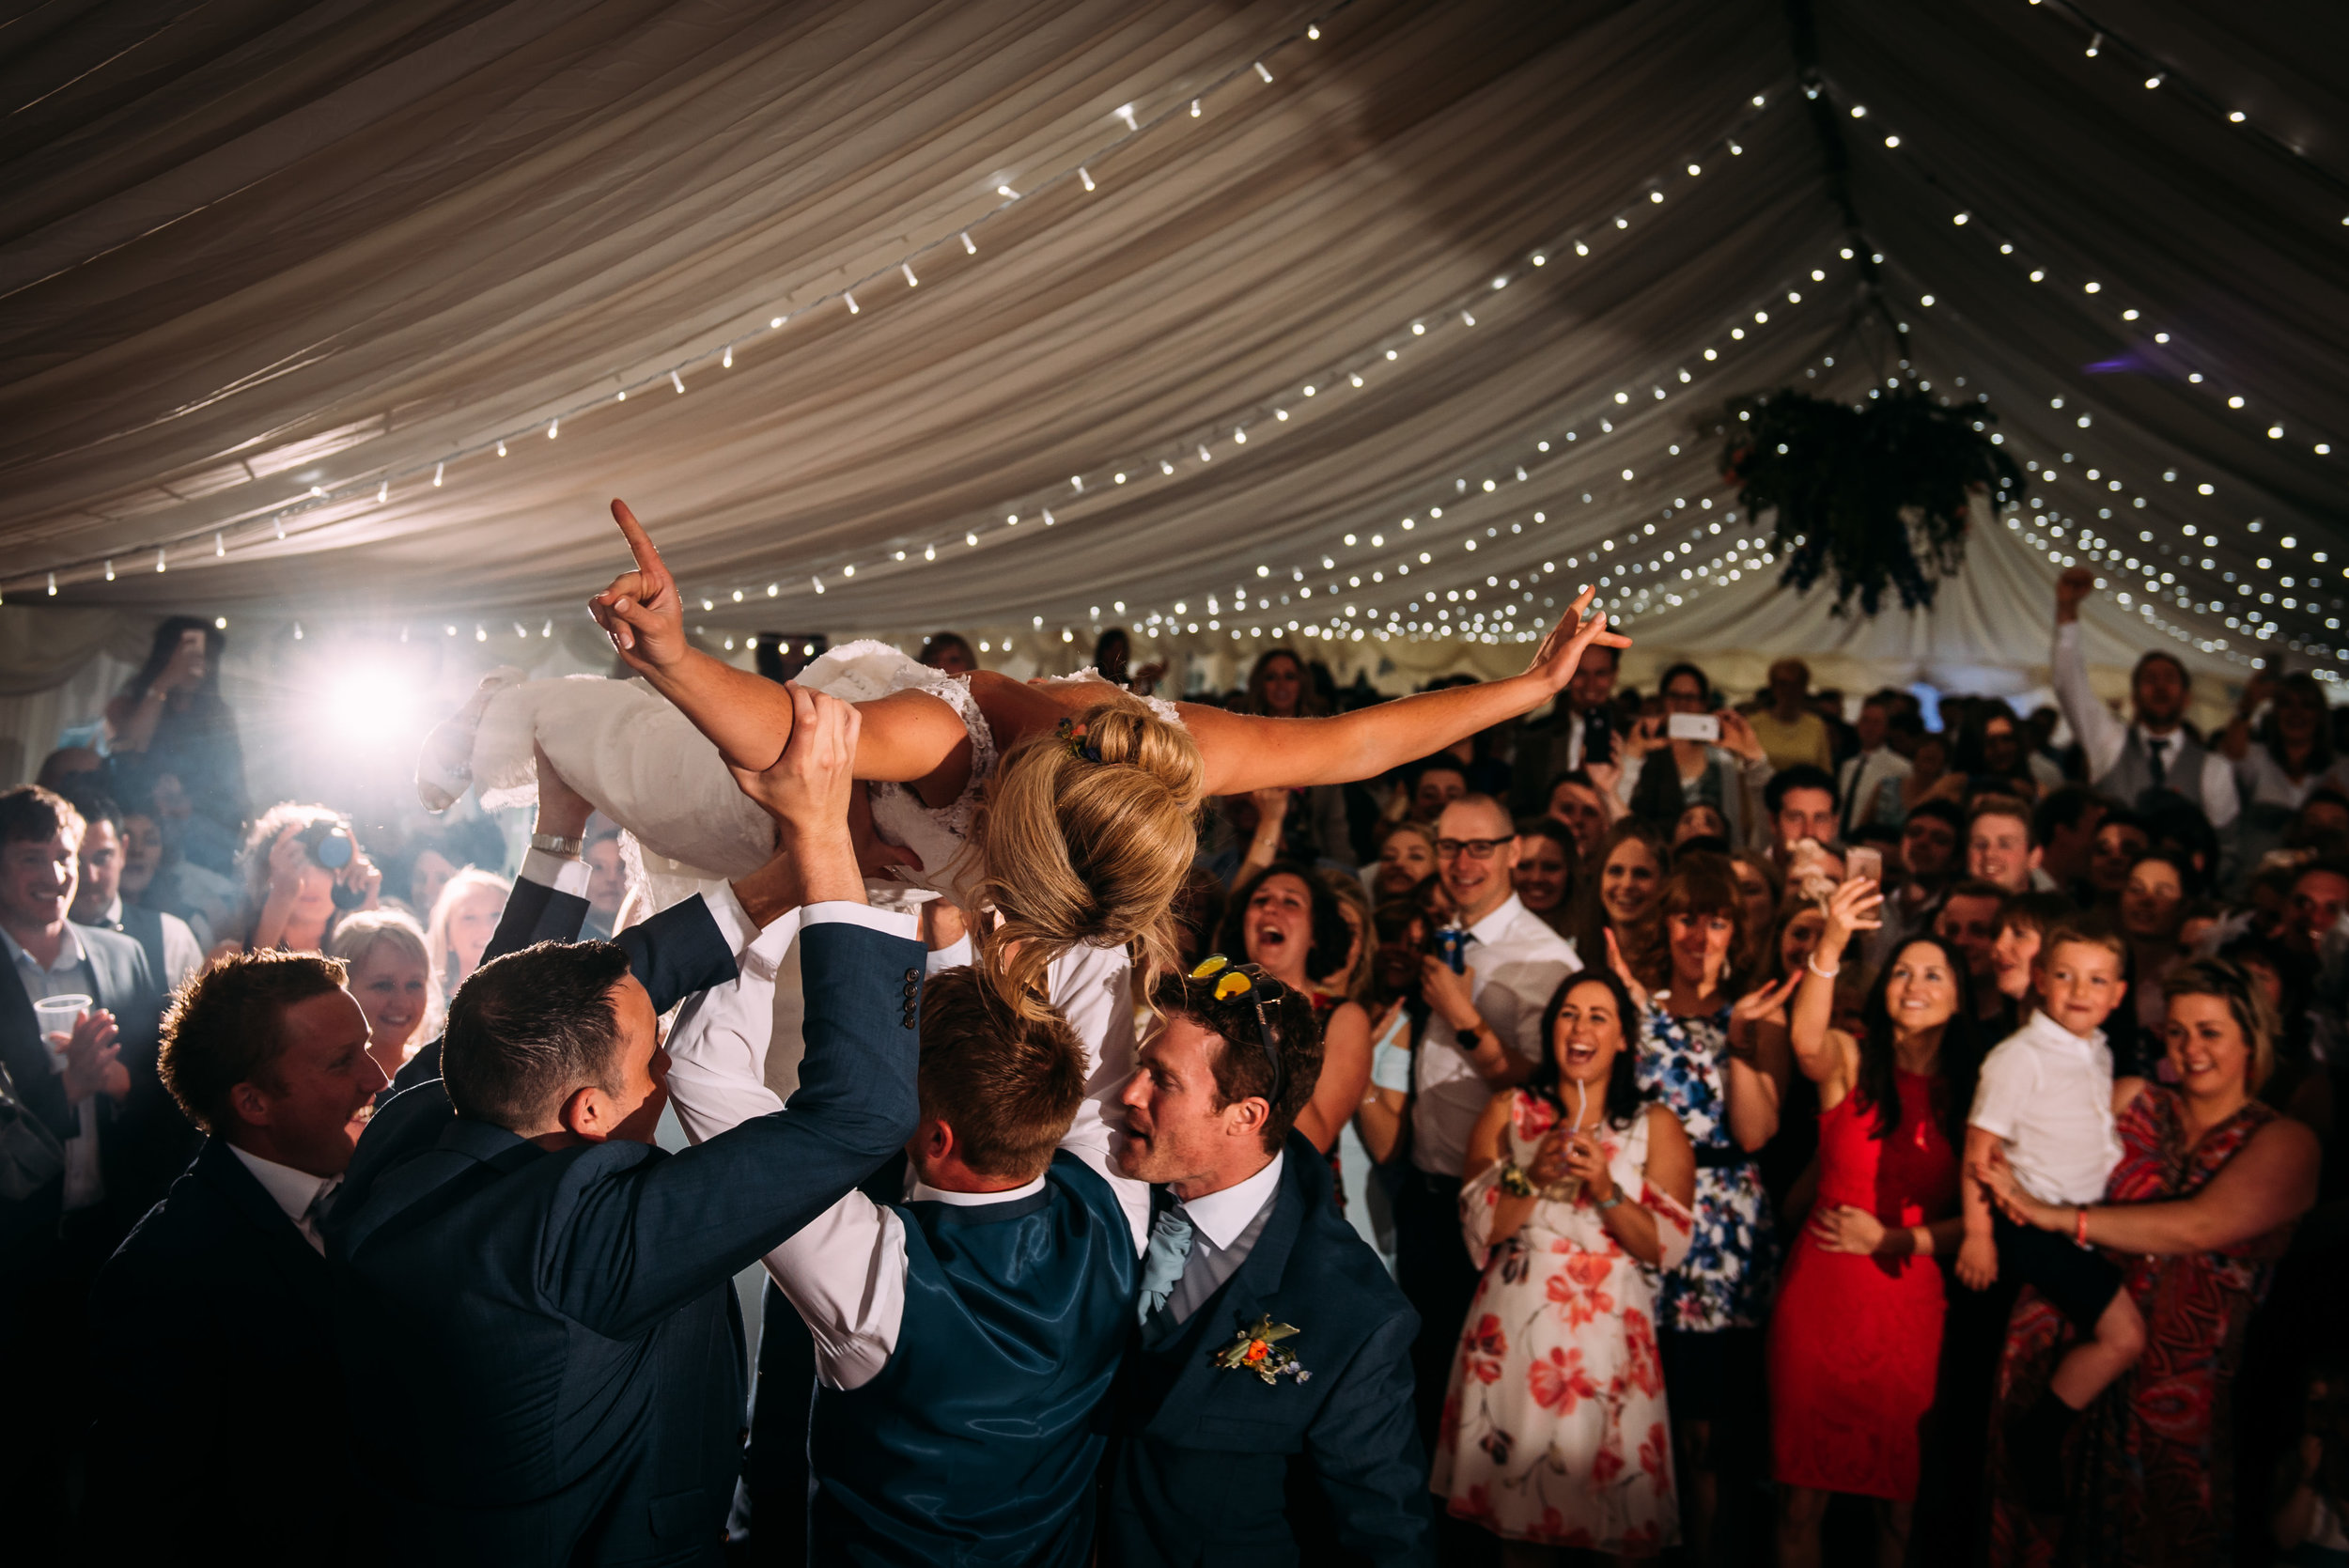 all the guest cheering at the bride being lifted